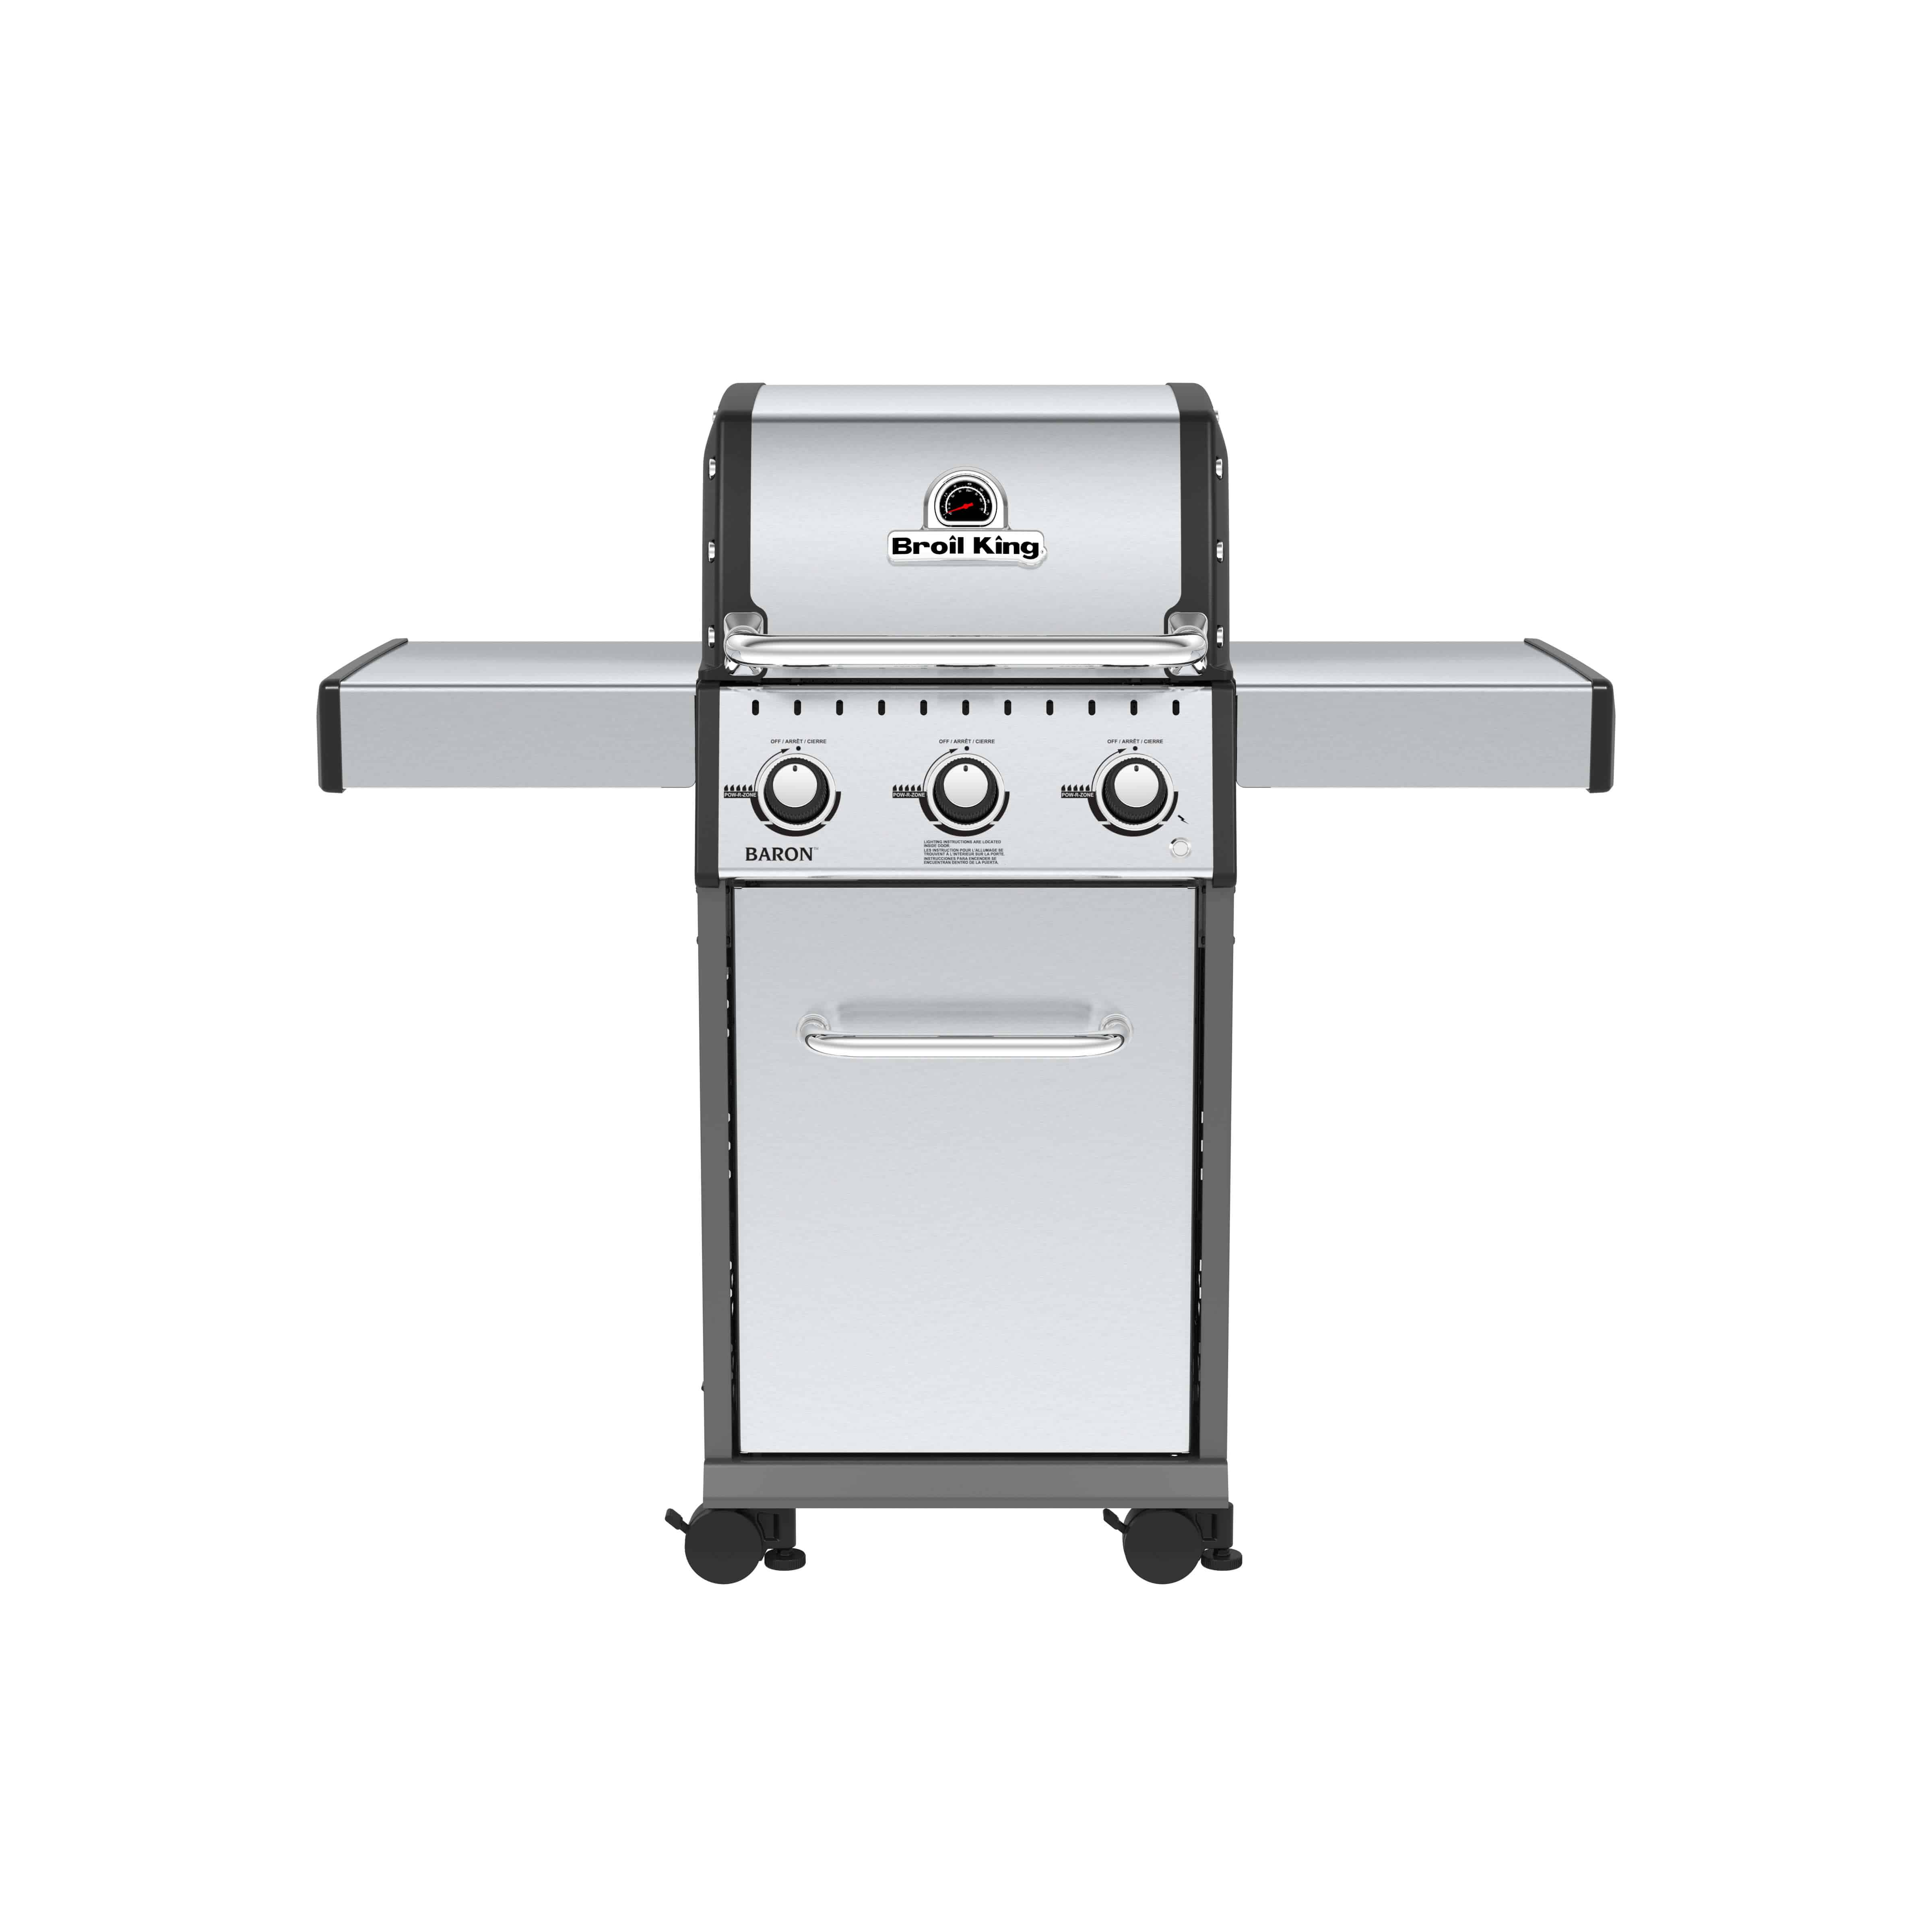 Broil King Baron 320 921554-1